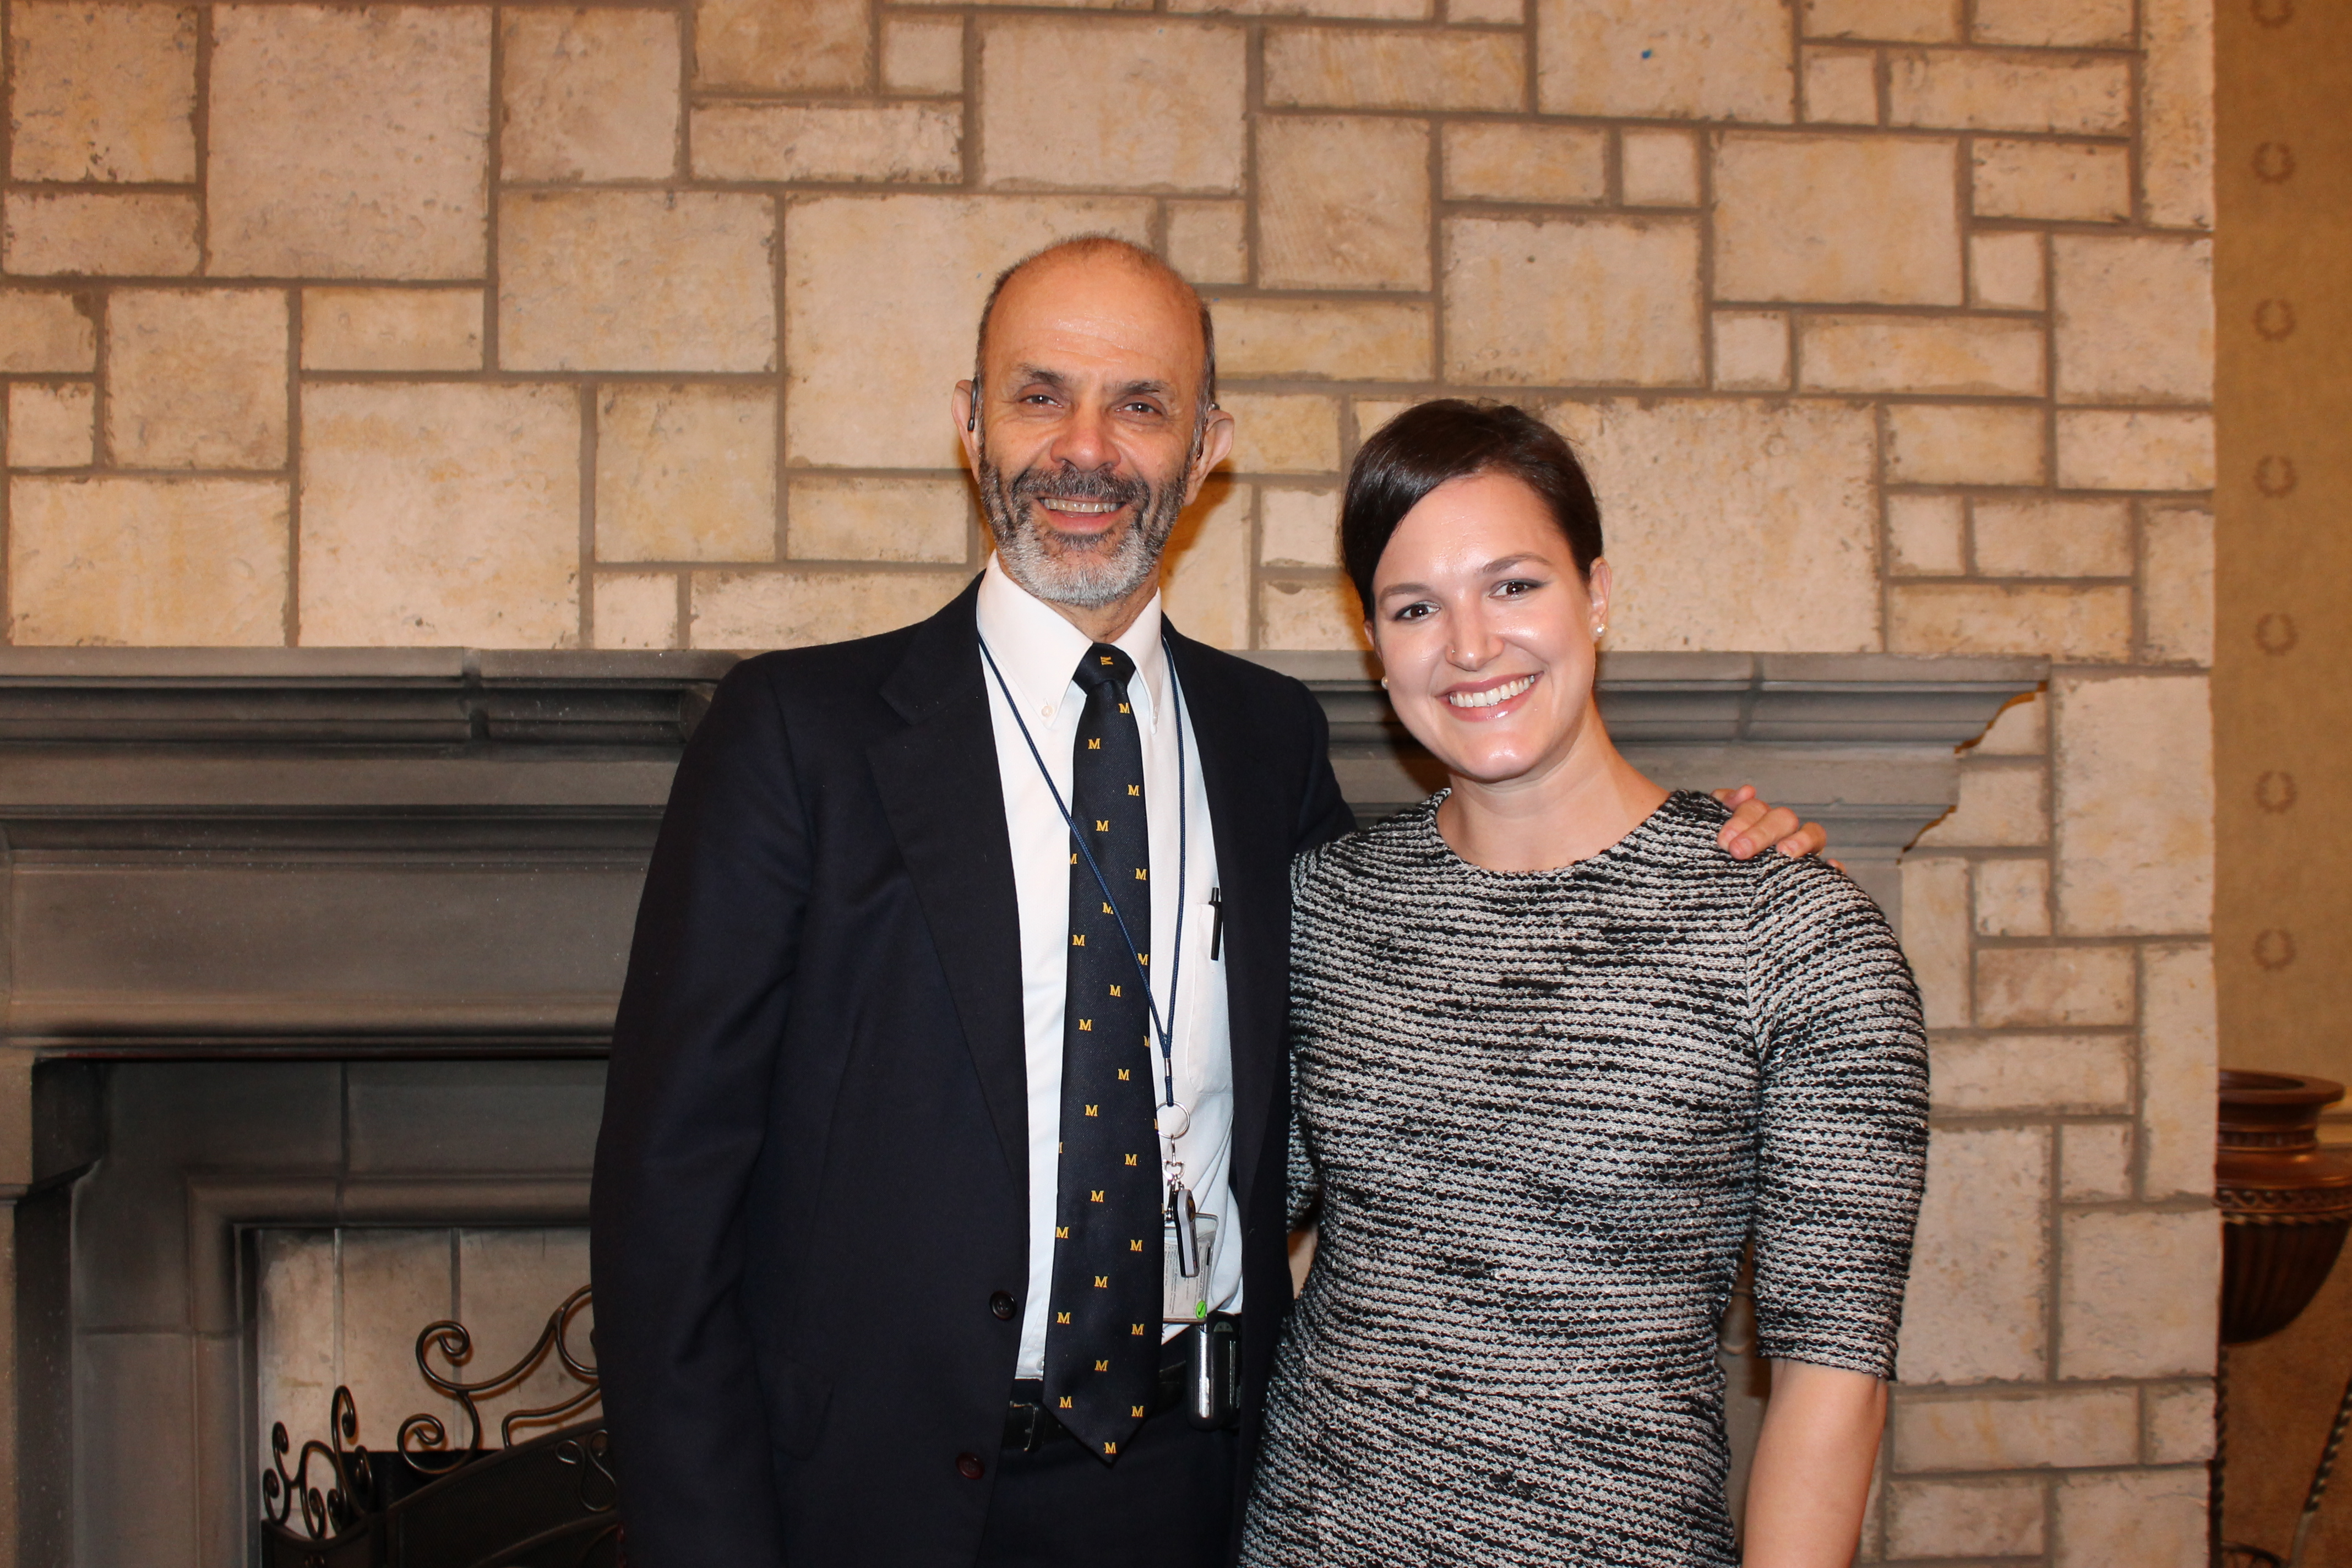 Philip Zazove, M.D. and Lindsey Kolar